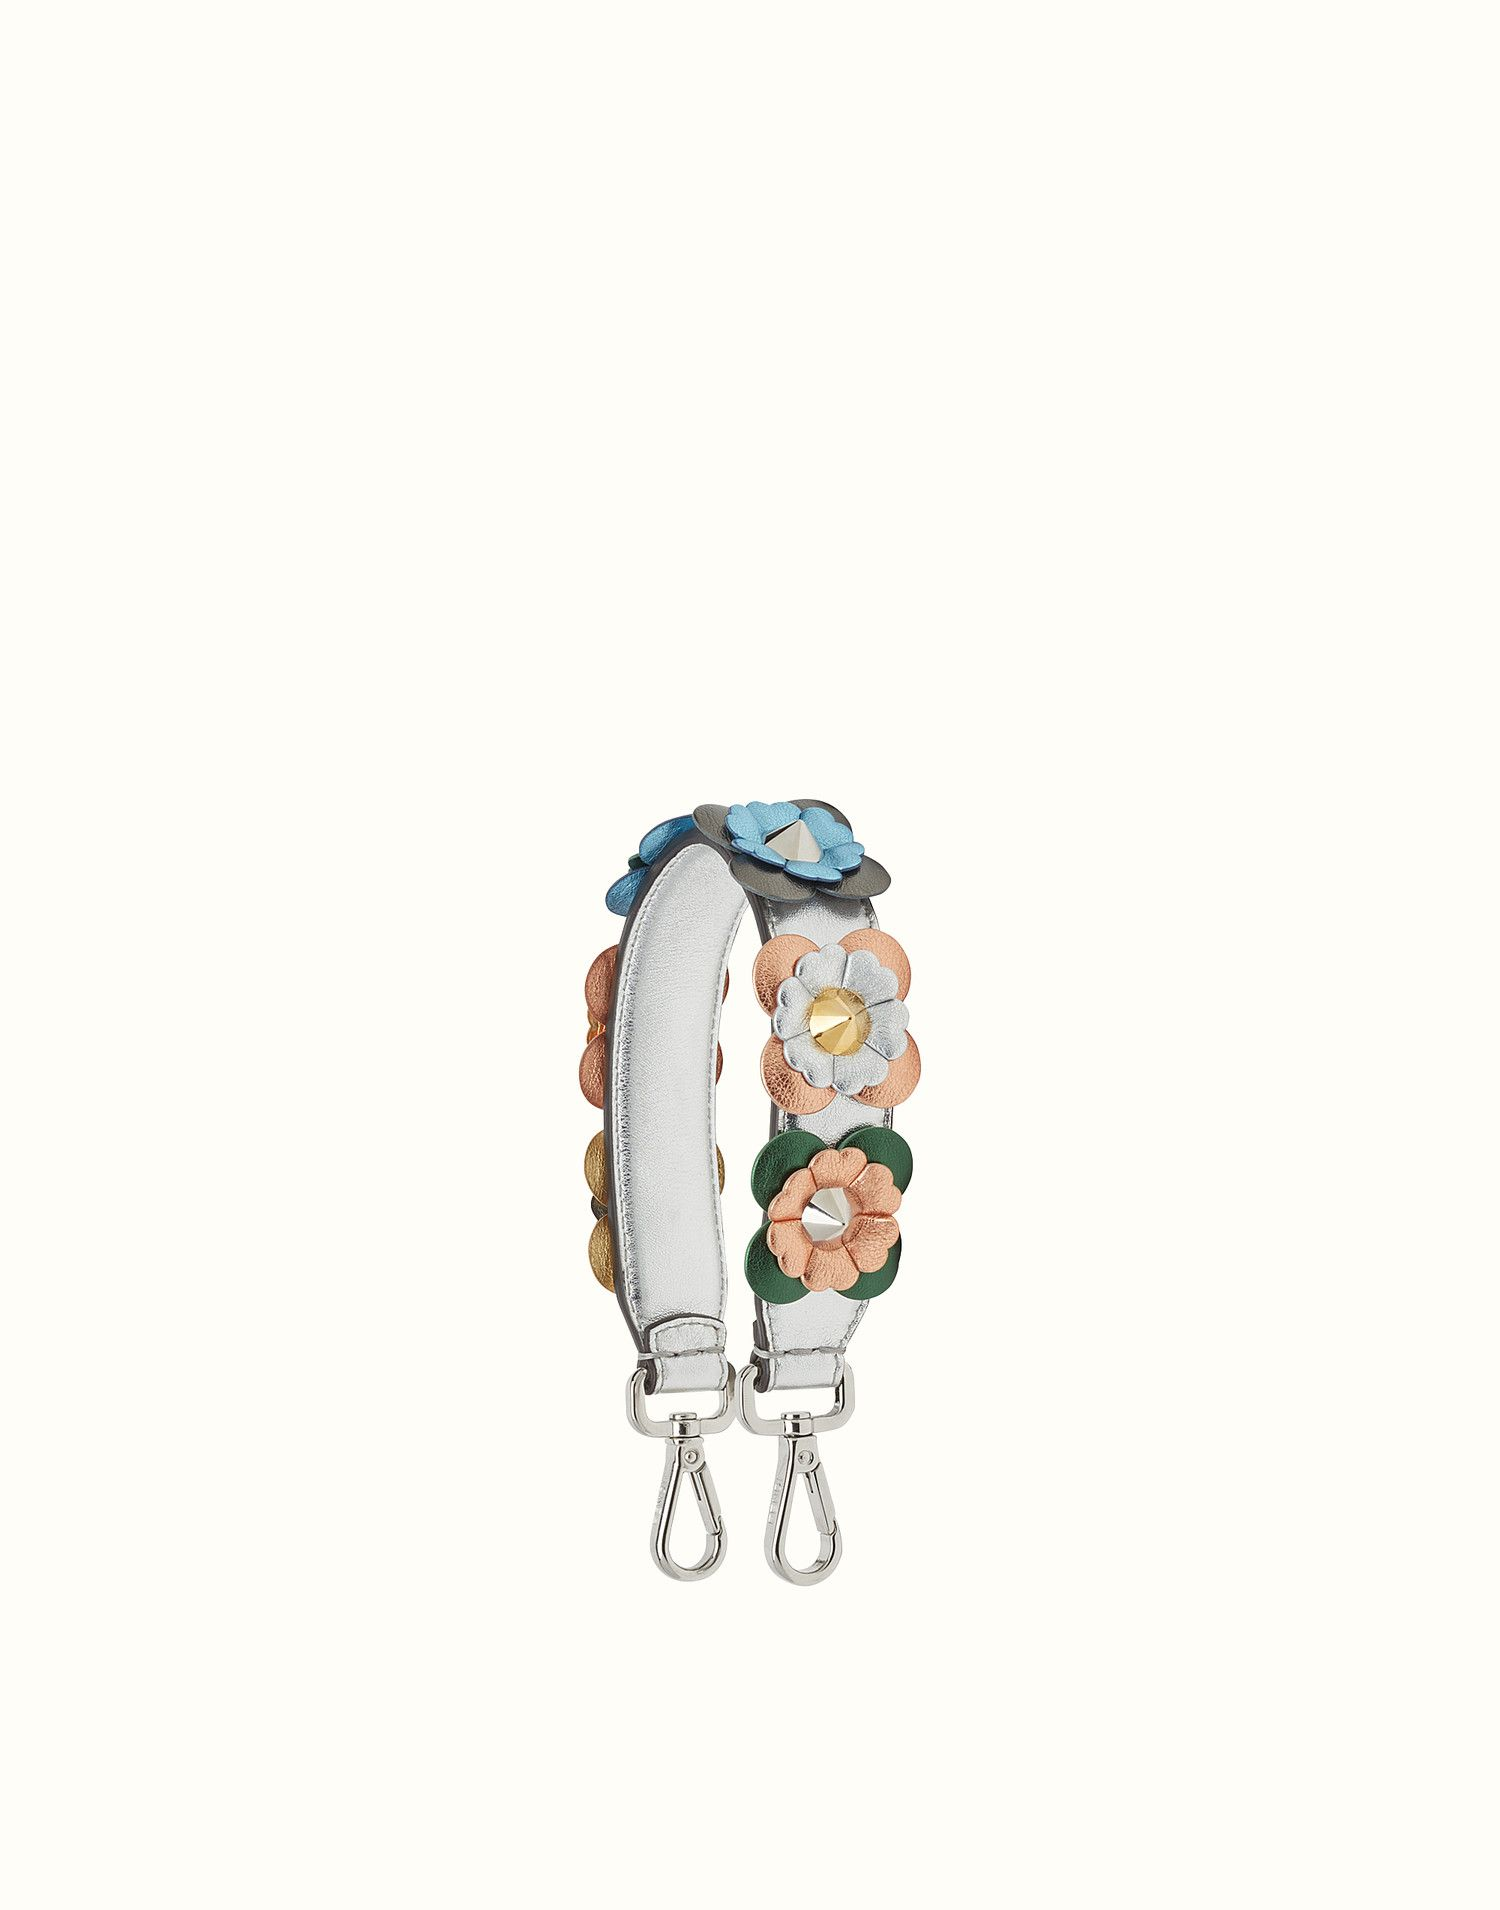 1469956dfc2ae FENDI MINI STRAP YOU - Short shoulder strap in leather with flowers - view  1 zoom